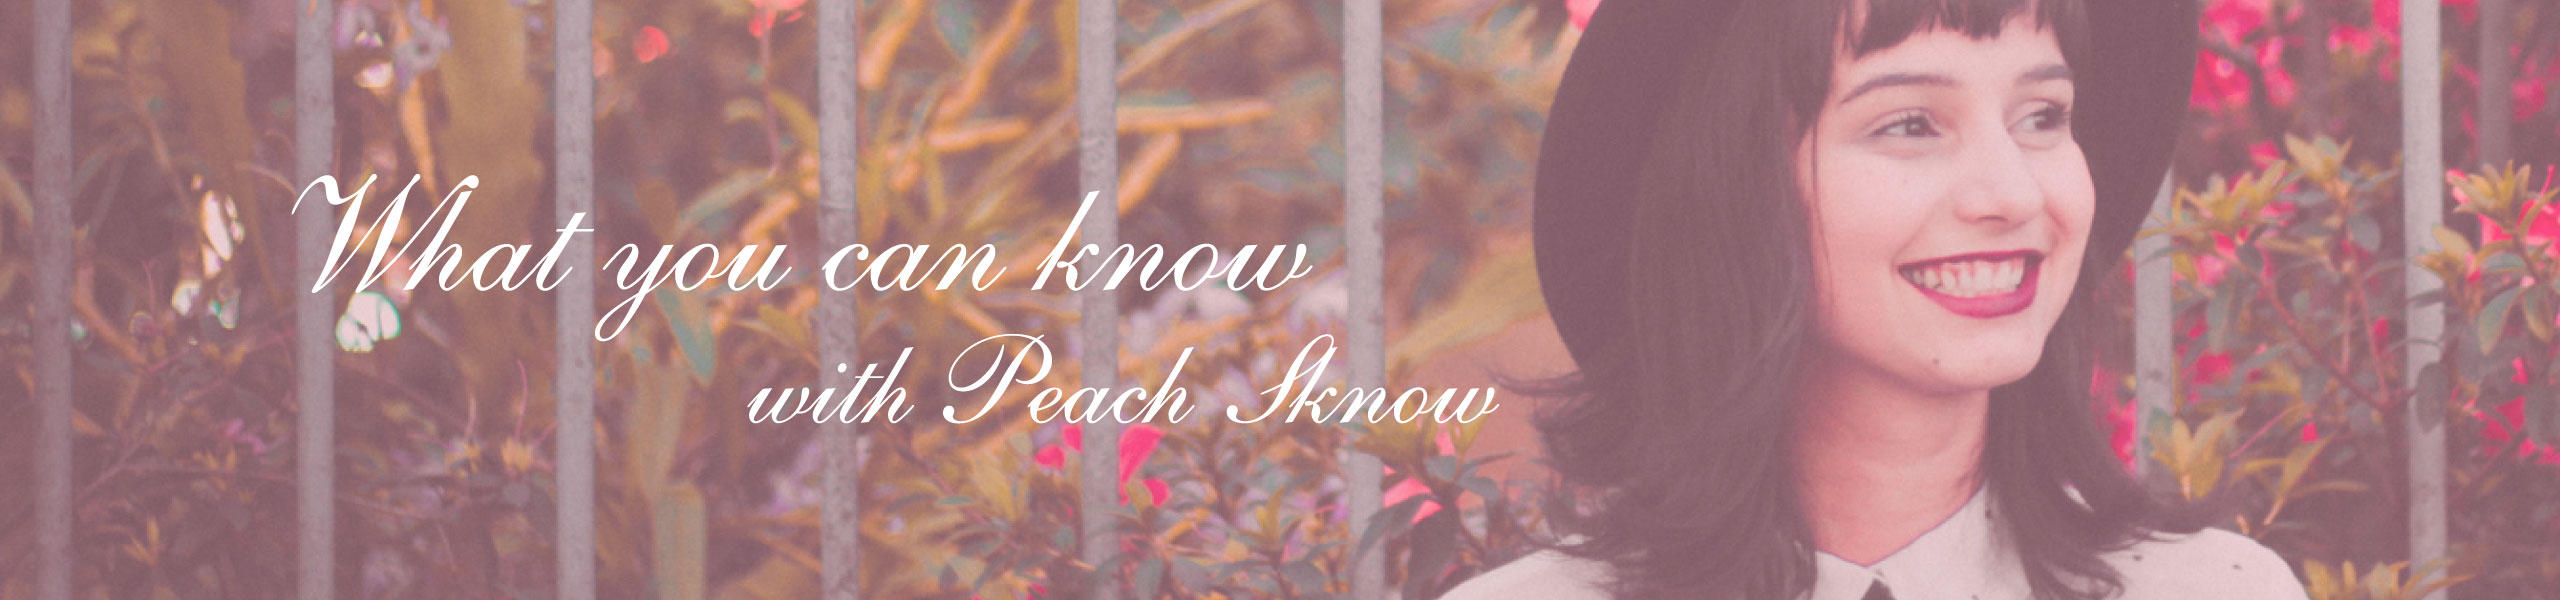 What you can know with Peach Sknow